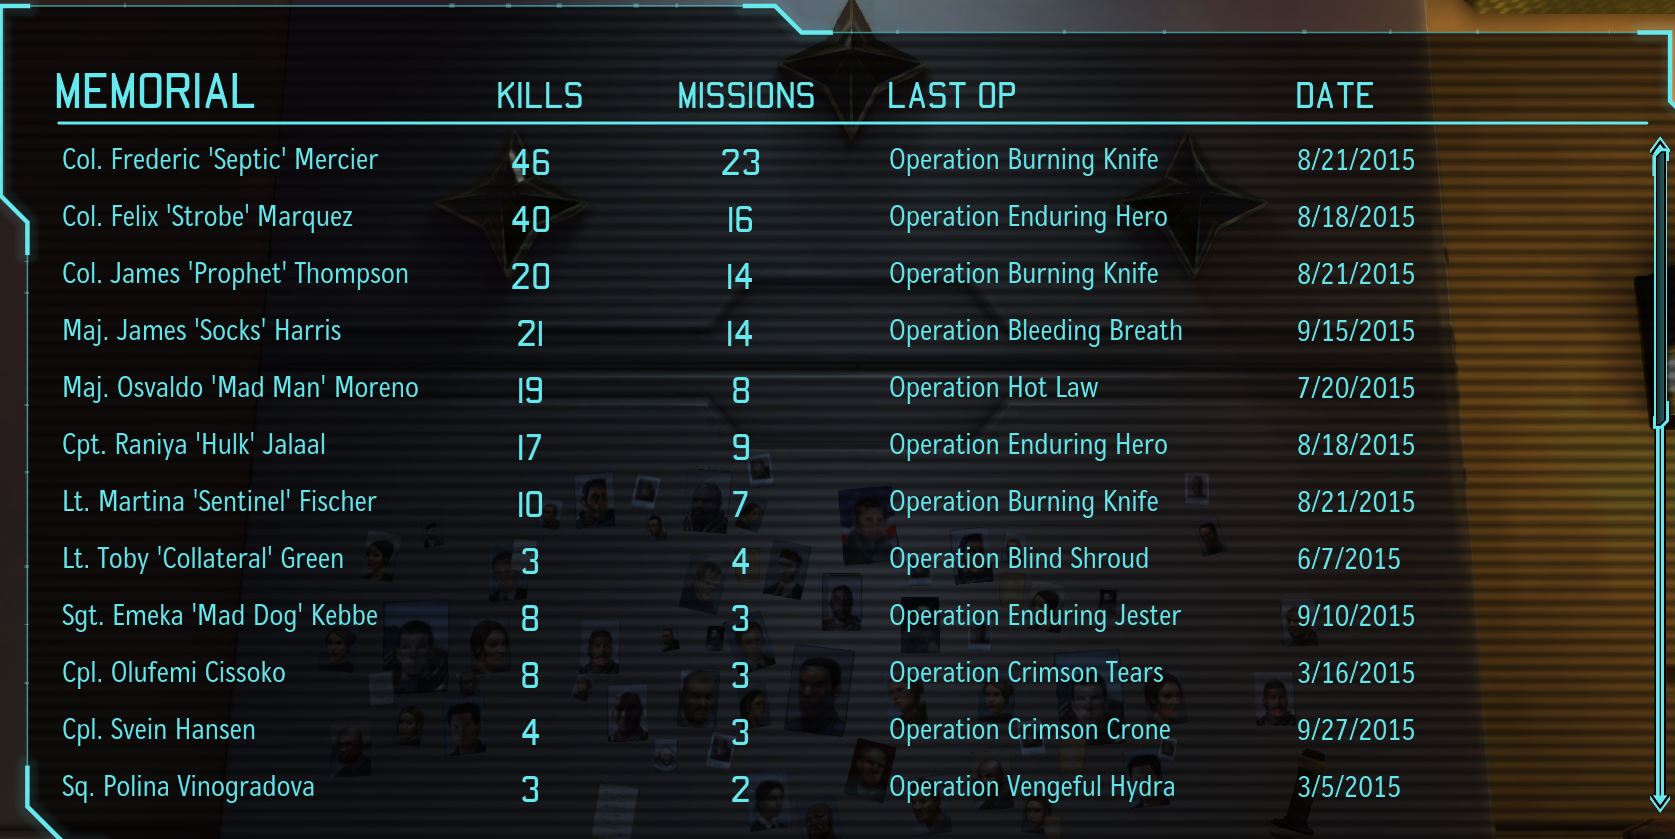 dantrag games that sniper dont kill option final with pretty often levels agree have being bonus they covert operative them deal class isnt support like thing guaranteed perks med-kit only favorites diverse more sure roulette squad heat heavy sprinter ammo training exalt know what scary really makes ridiculously seems pcps3360 unknown enemy